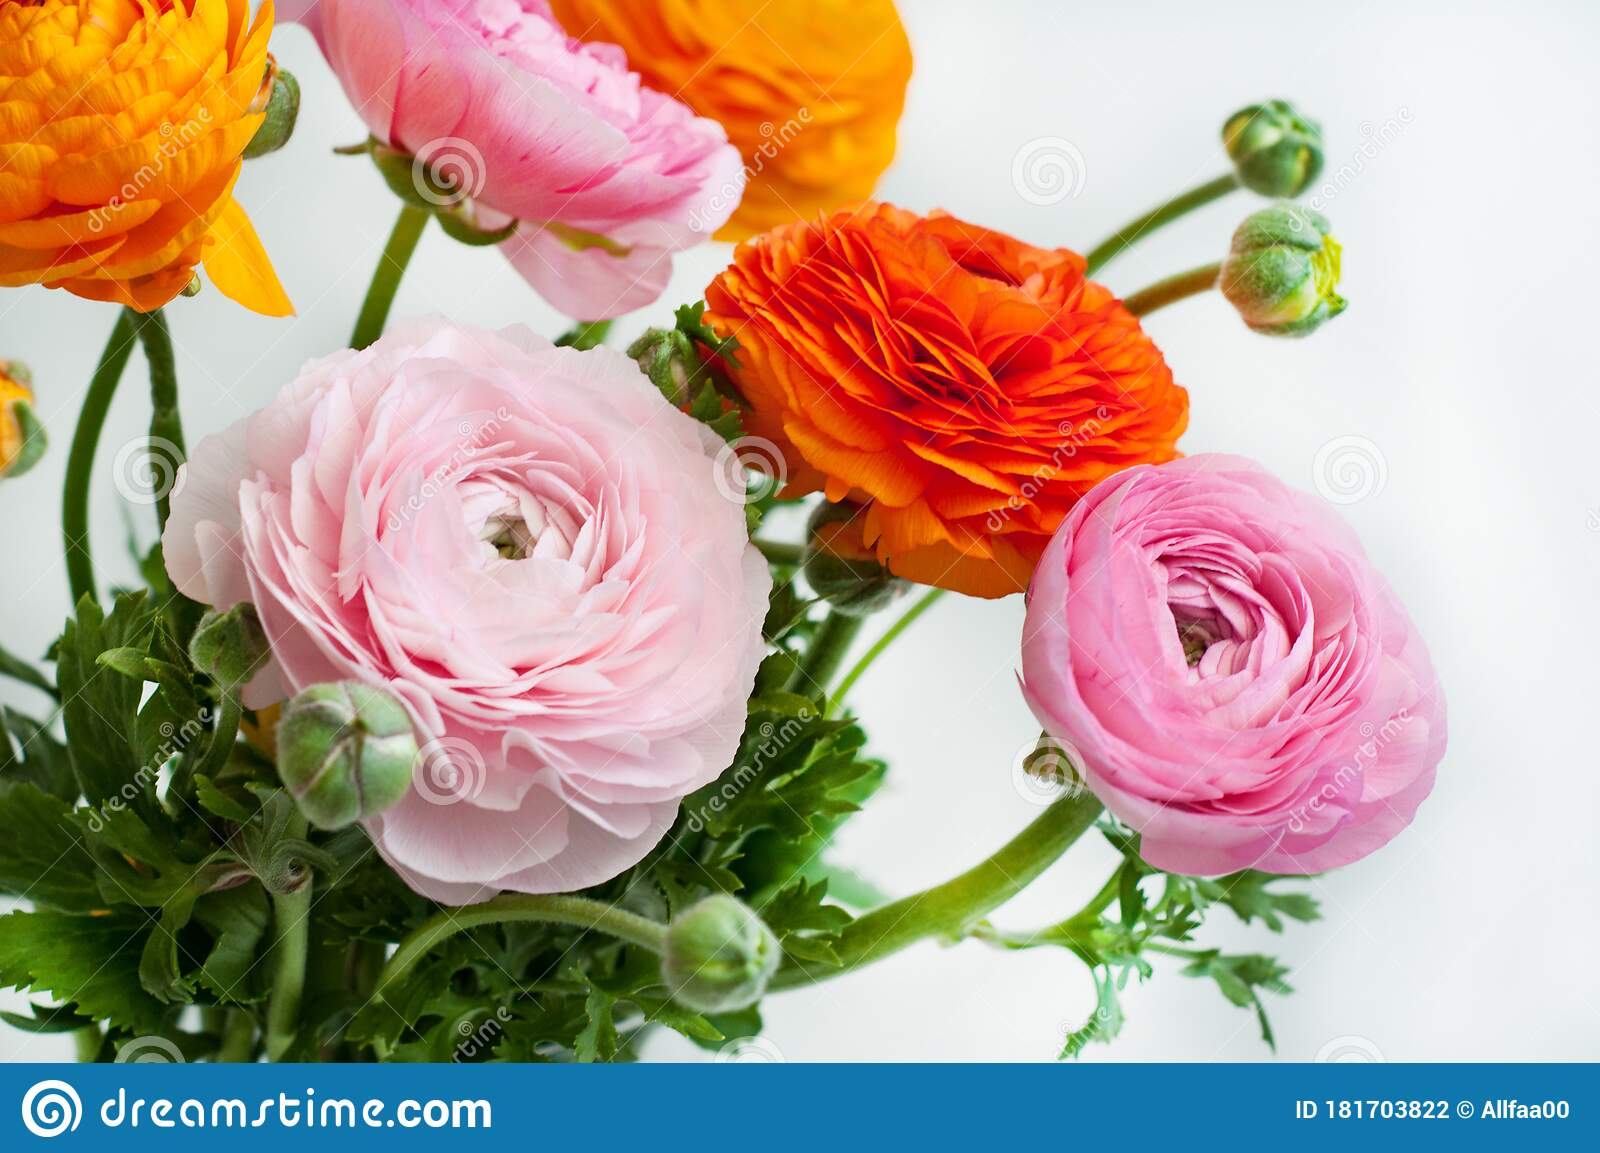 Beautiful Bouquet Of Ranunculus Flowers Of Orange And Pink Color On A White Background Flowers And Buds Stock Photo Image Of Green Delicate 181703822